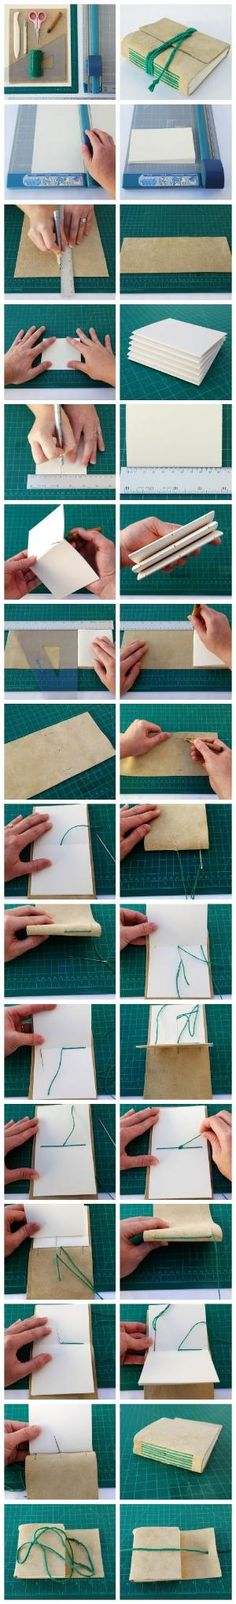 Learn how to make a long-stitch bound journal. #FreeTutorial #Bookbinding #Papercraft by Maiden11976